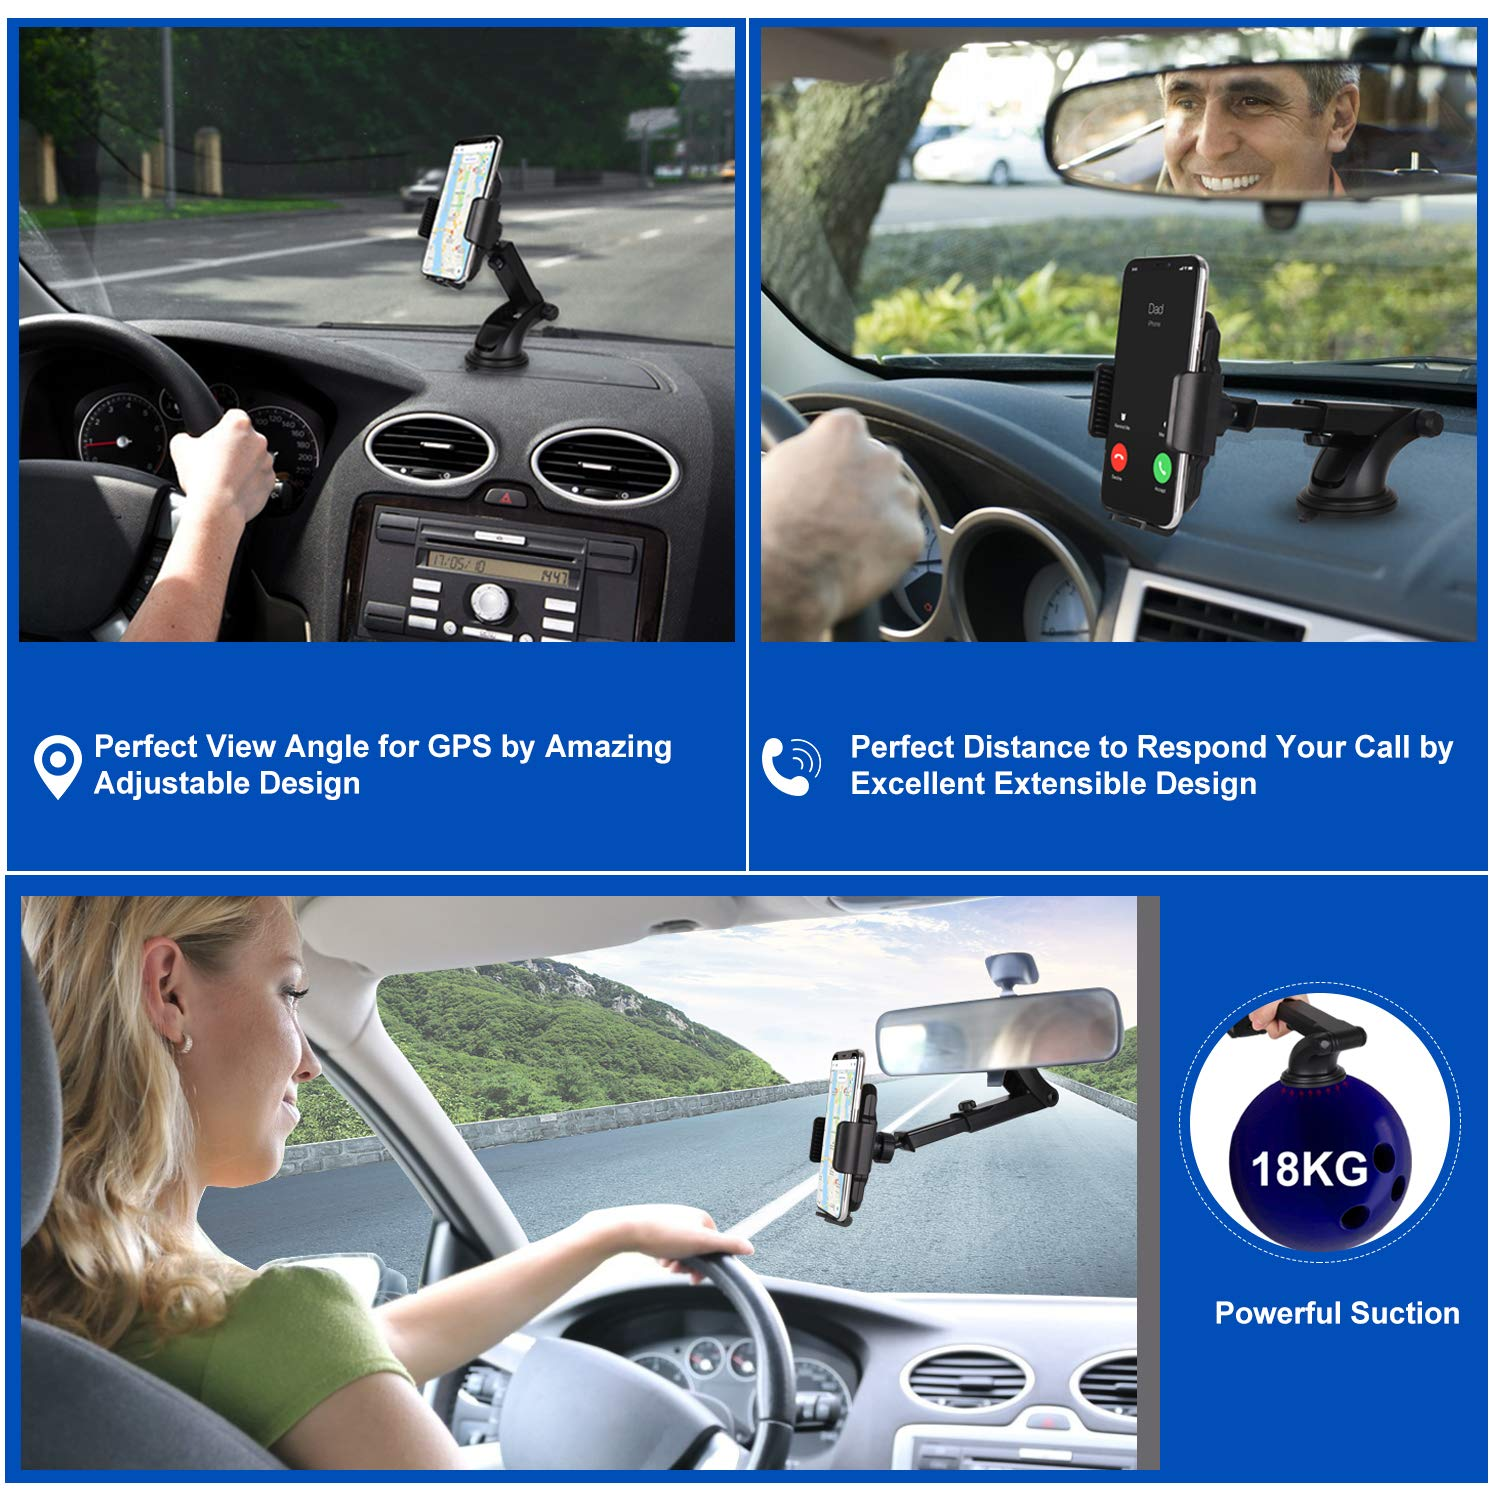 Dashboard Cell Phone Holder Car Phone Mount Strong Suction Cup Phone Holder Extensible /& Adjustable Windshield Phone Mount for 3.5-7 Device iPhone X//8//8Plus//7//7Plus//6s//6Plus//5S Galaxy S9//S8//S7/… Mateplus